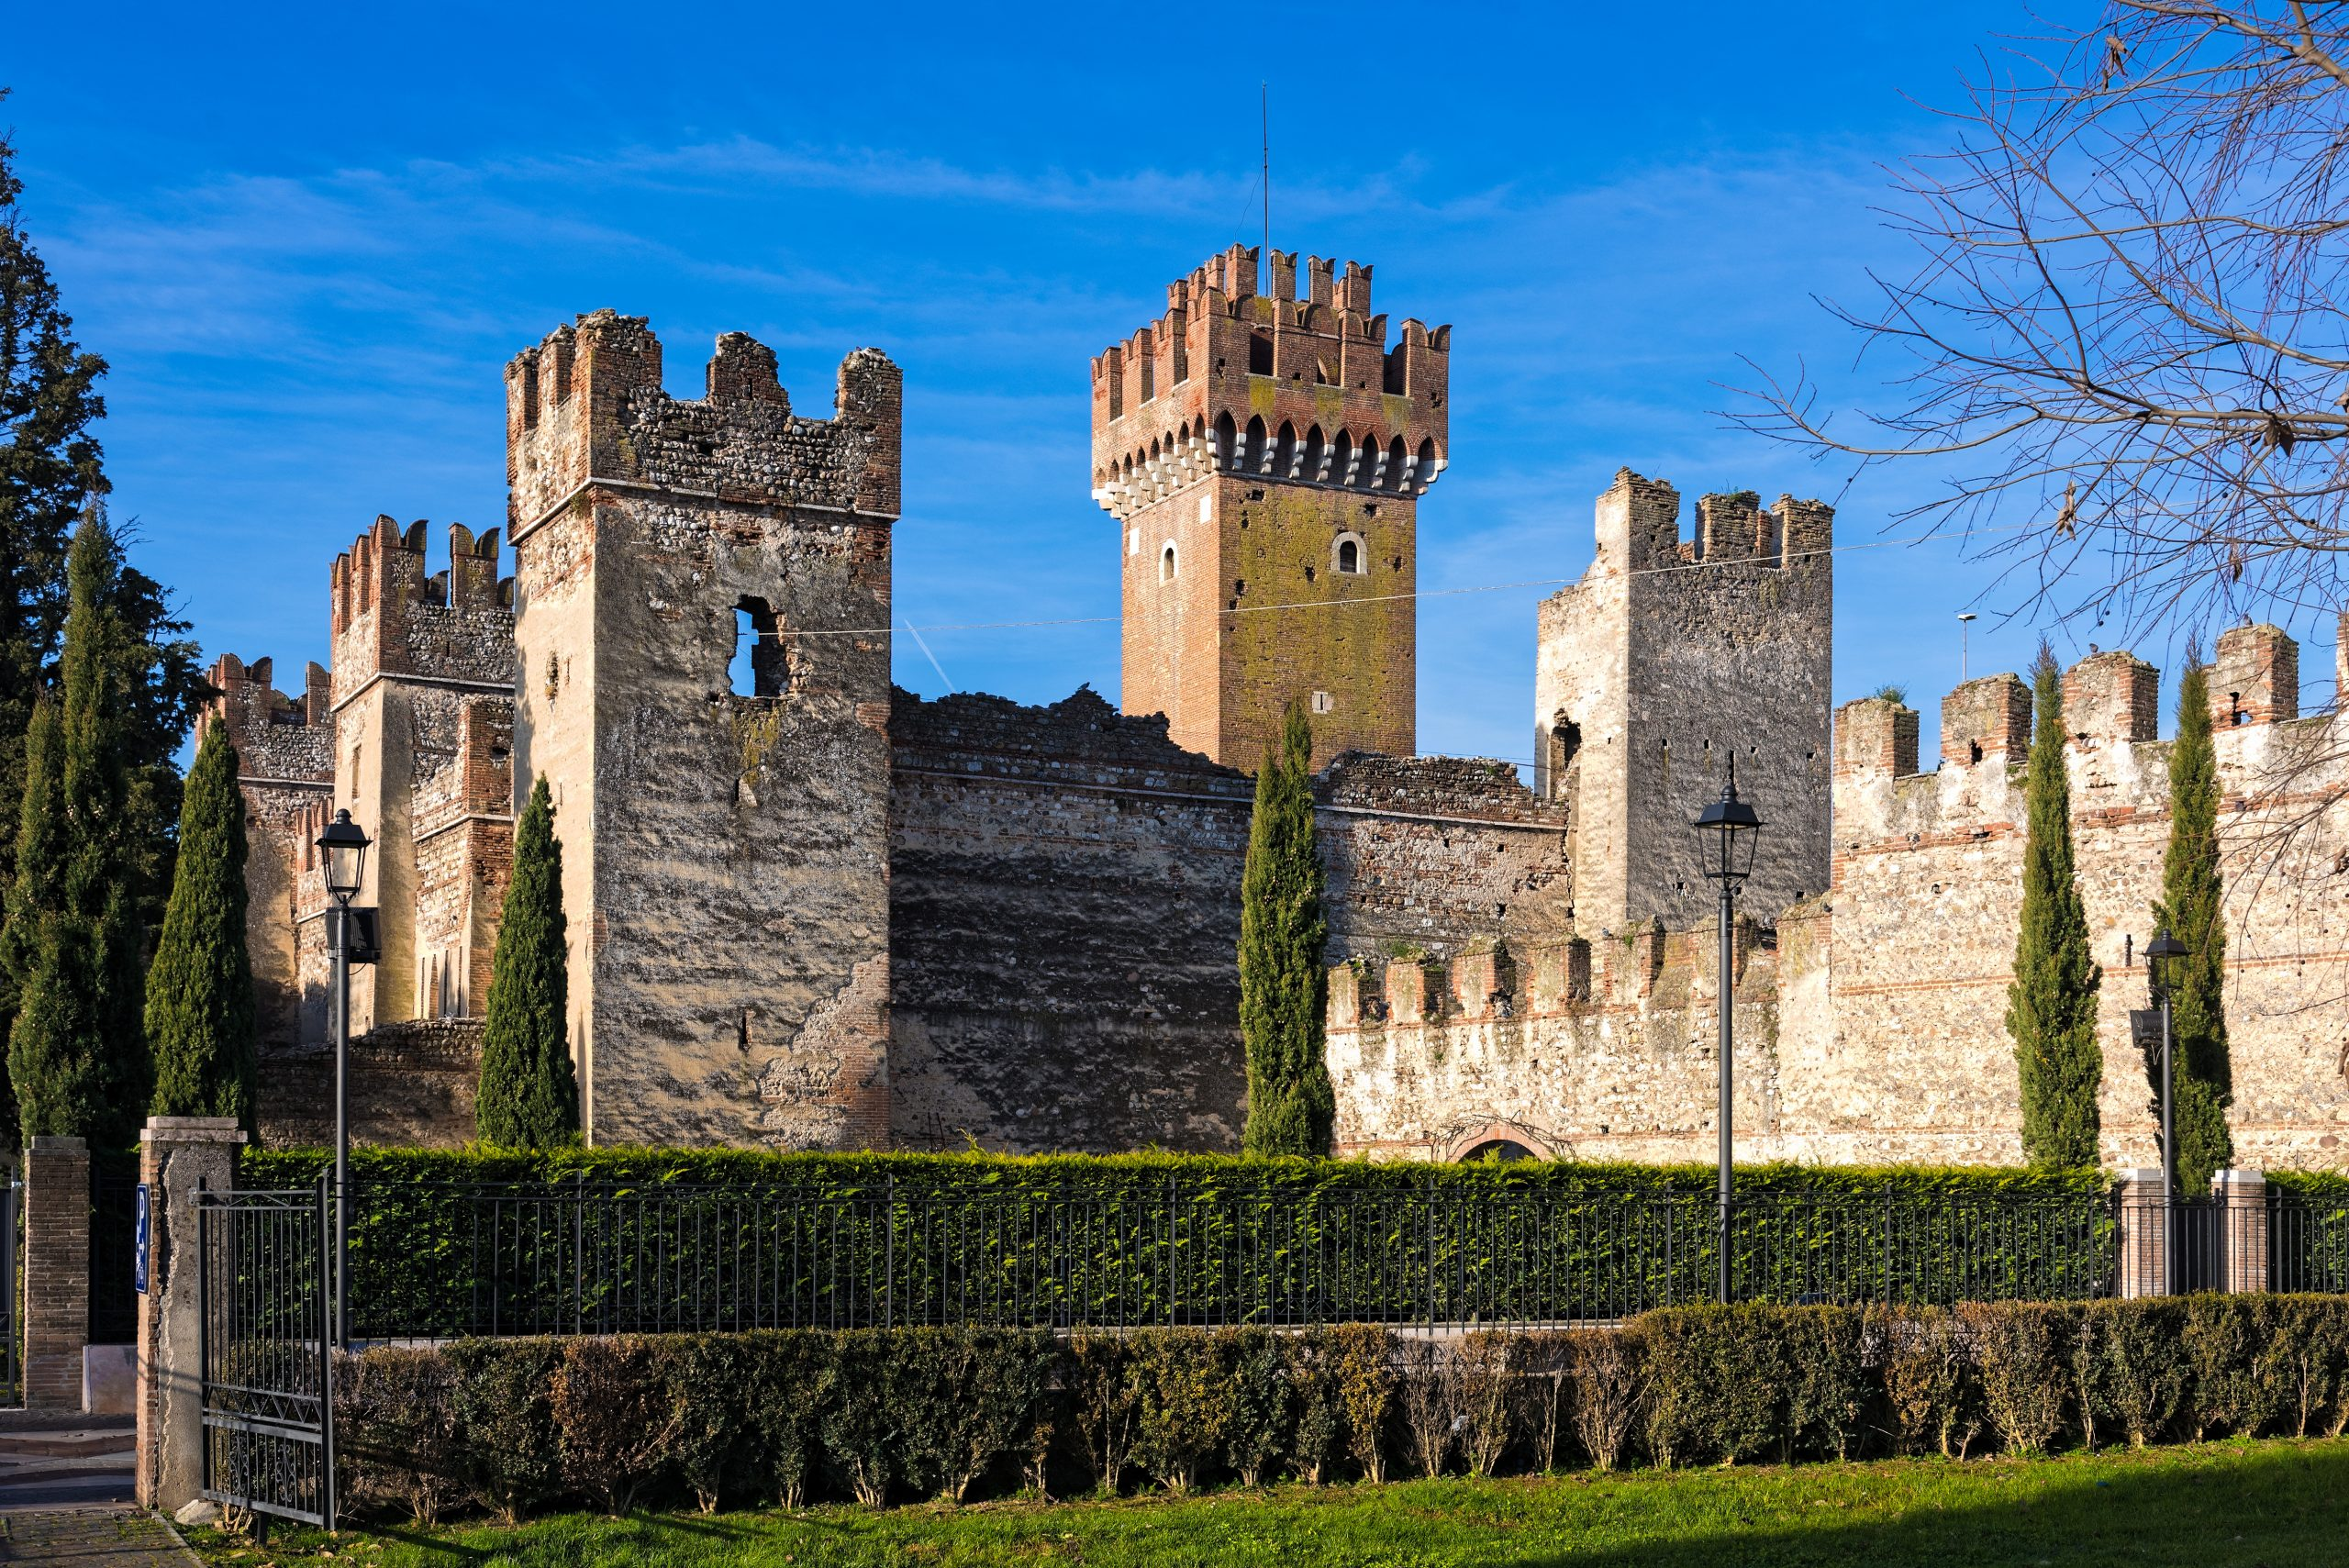 Part of the Scalier castle in Lazise, Italy